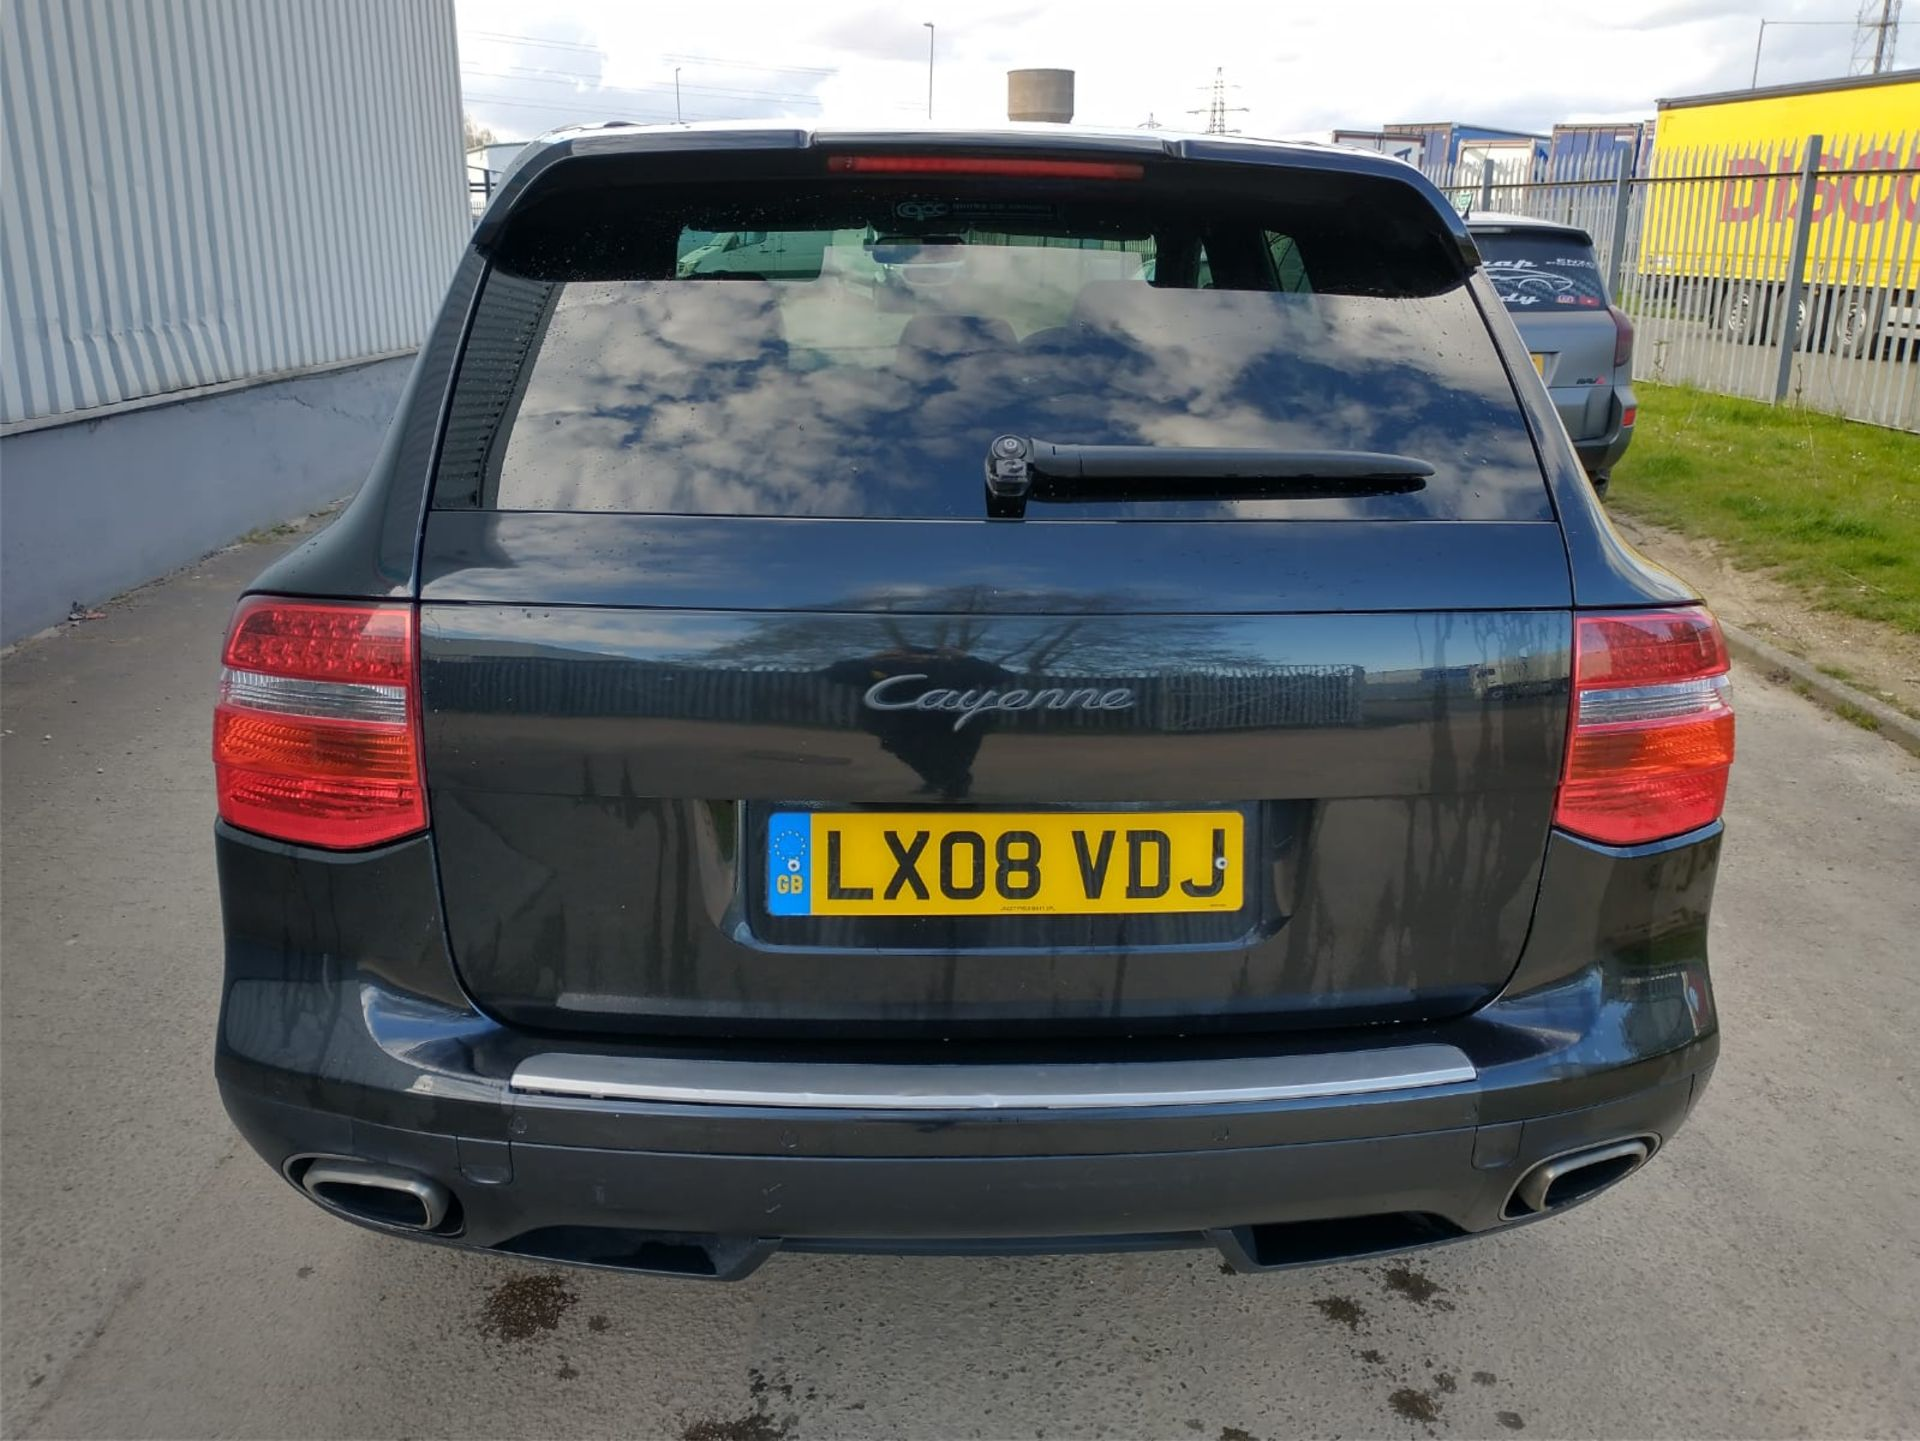 2008 Porsche Cayenne Tiptronic 3.6 5Dr SUV - CL505 - NO VAT ON THE HAMMER - Location: Corby, Northam - Image 9 of 16